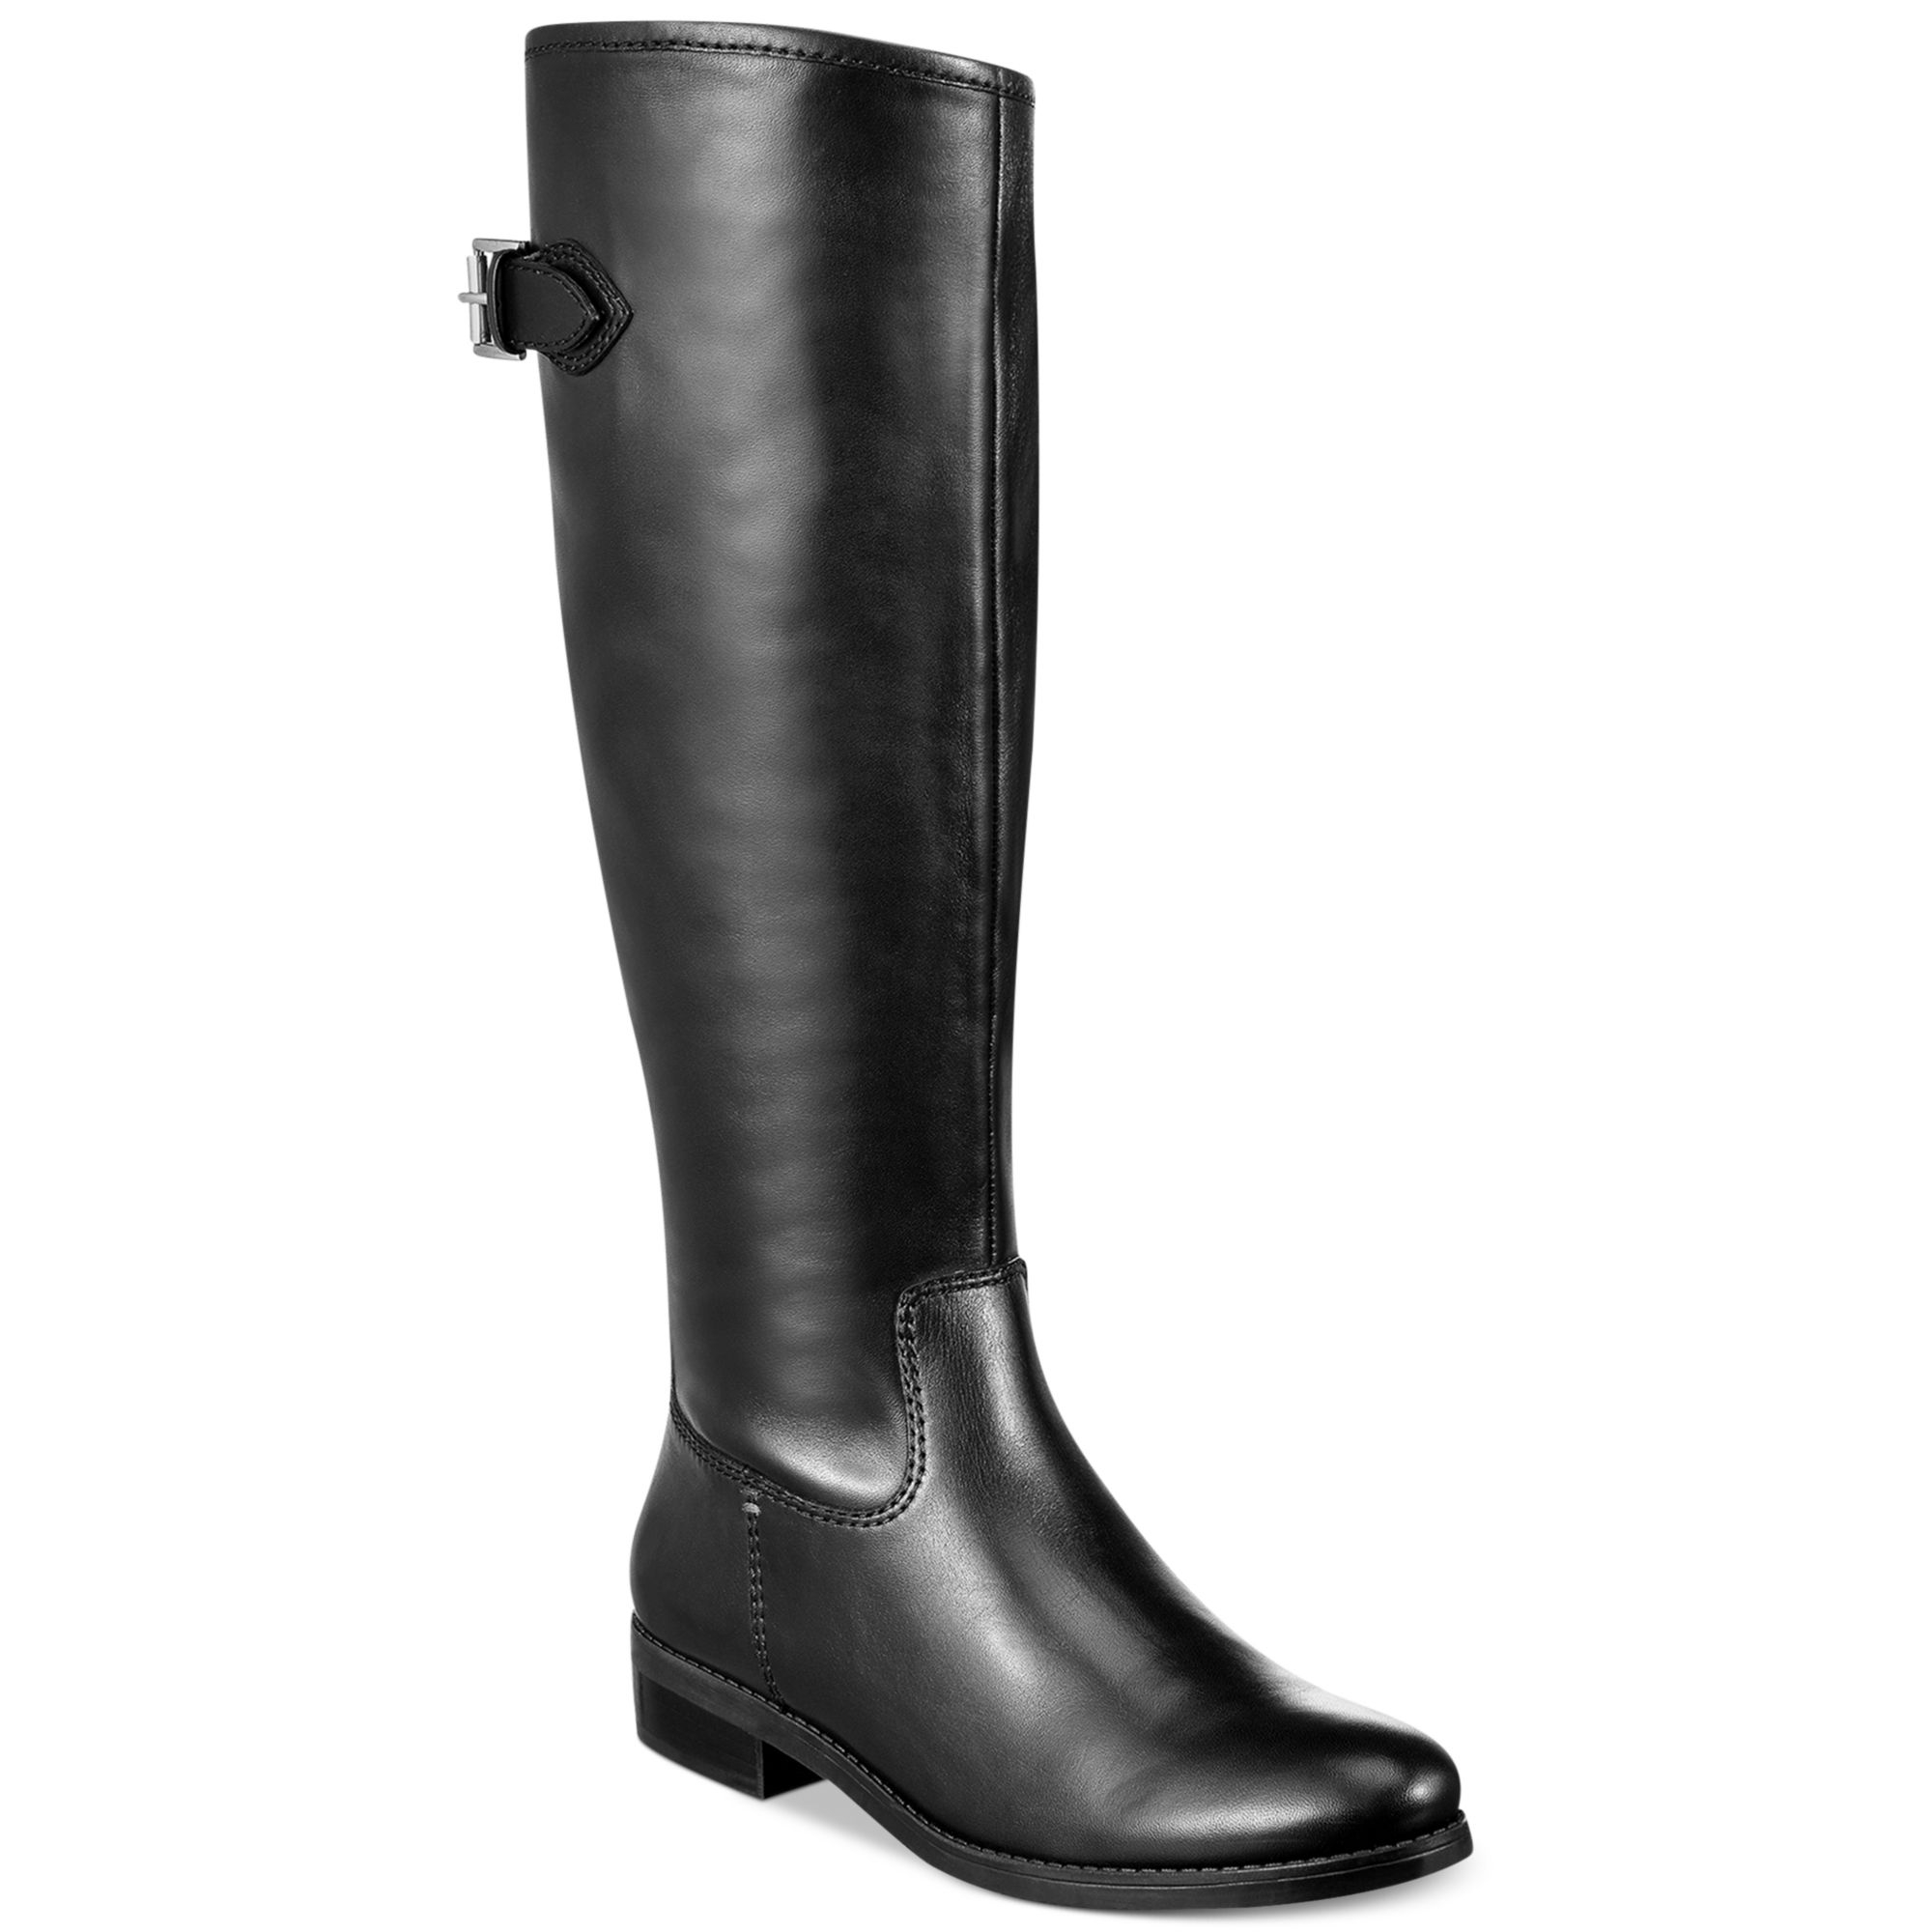 Tommy hilfiger Dexter2 Wide Calf Tall Riding Boots in Black | Lyst